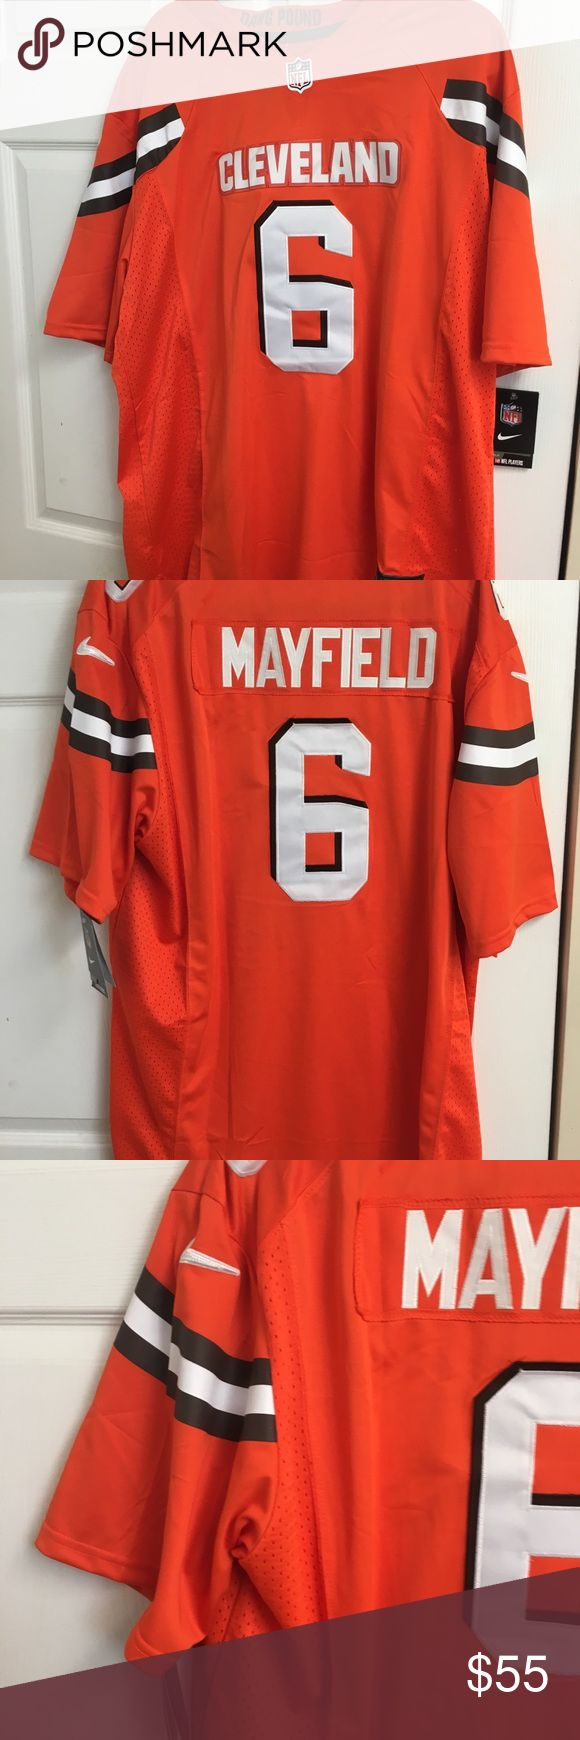 New Nike Baker Mayfield Jersey NWT Nike shirts, Clothes